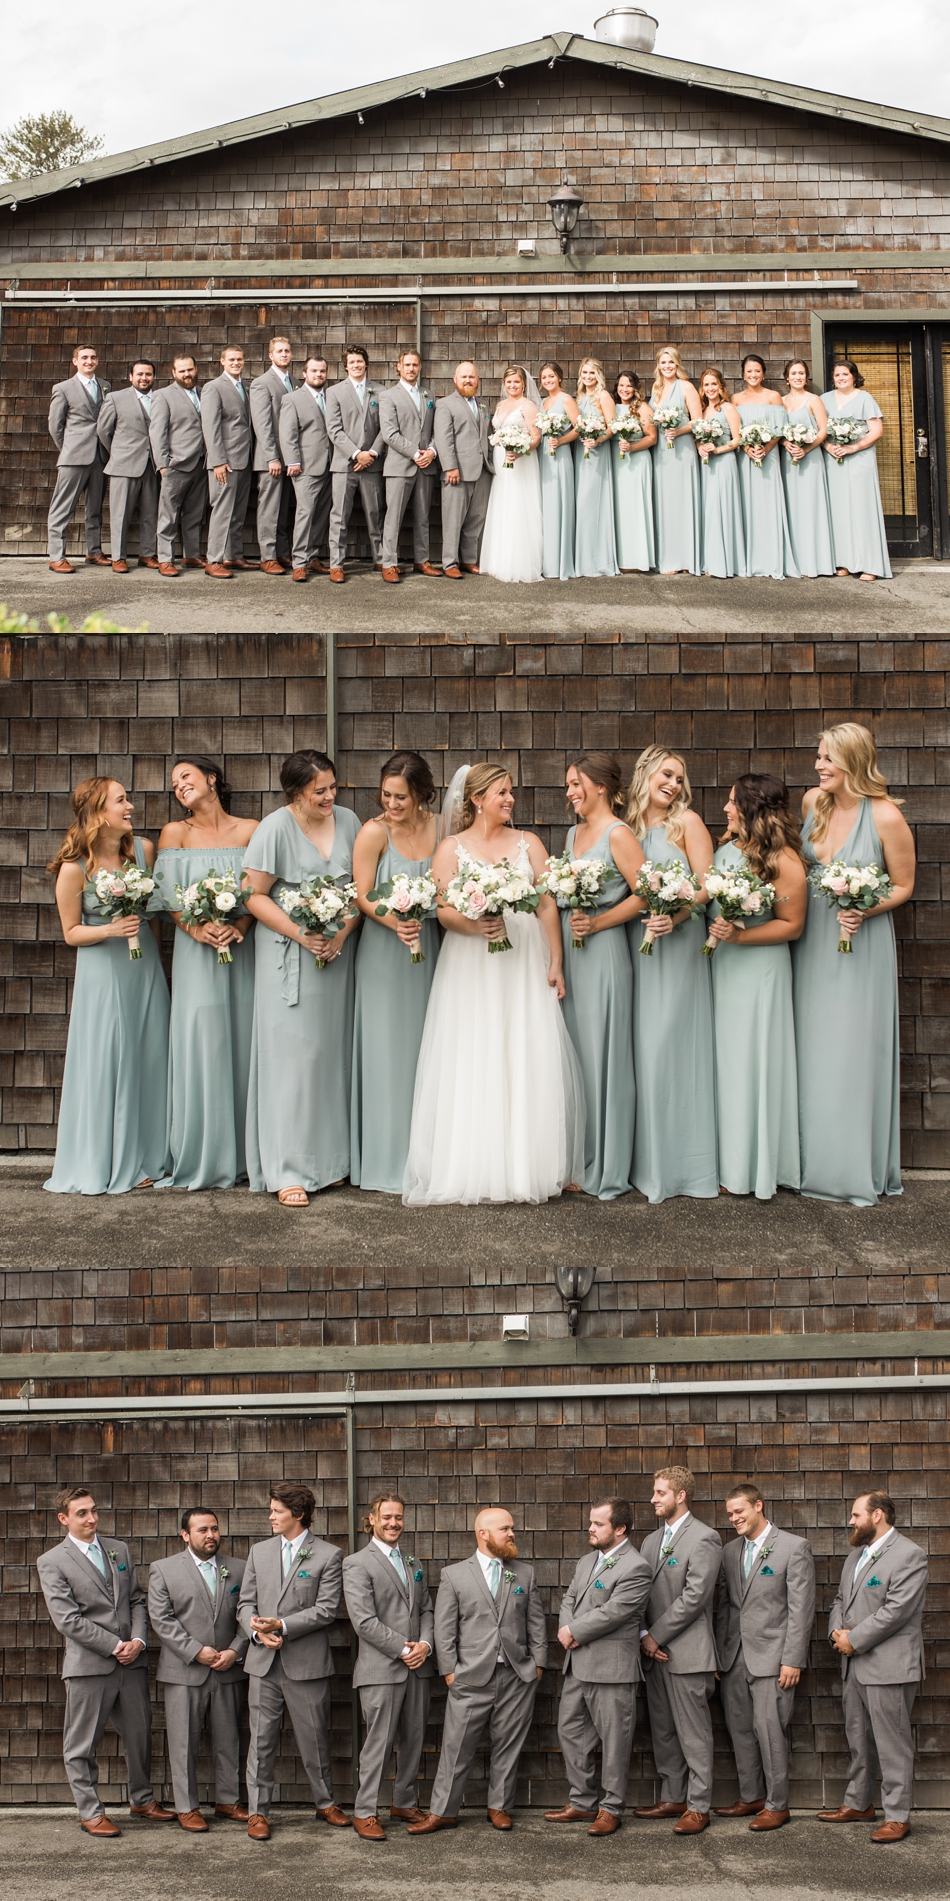 Photo of bridal party at a Hidden Meadows Farms wedding in Snohomish, a rustic yet elegant wedding venue near Seattle. | Joanna Monger Photography